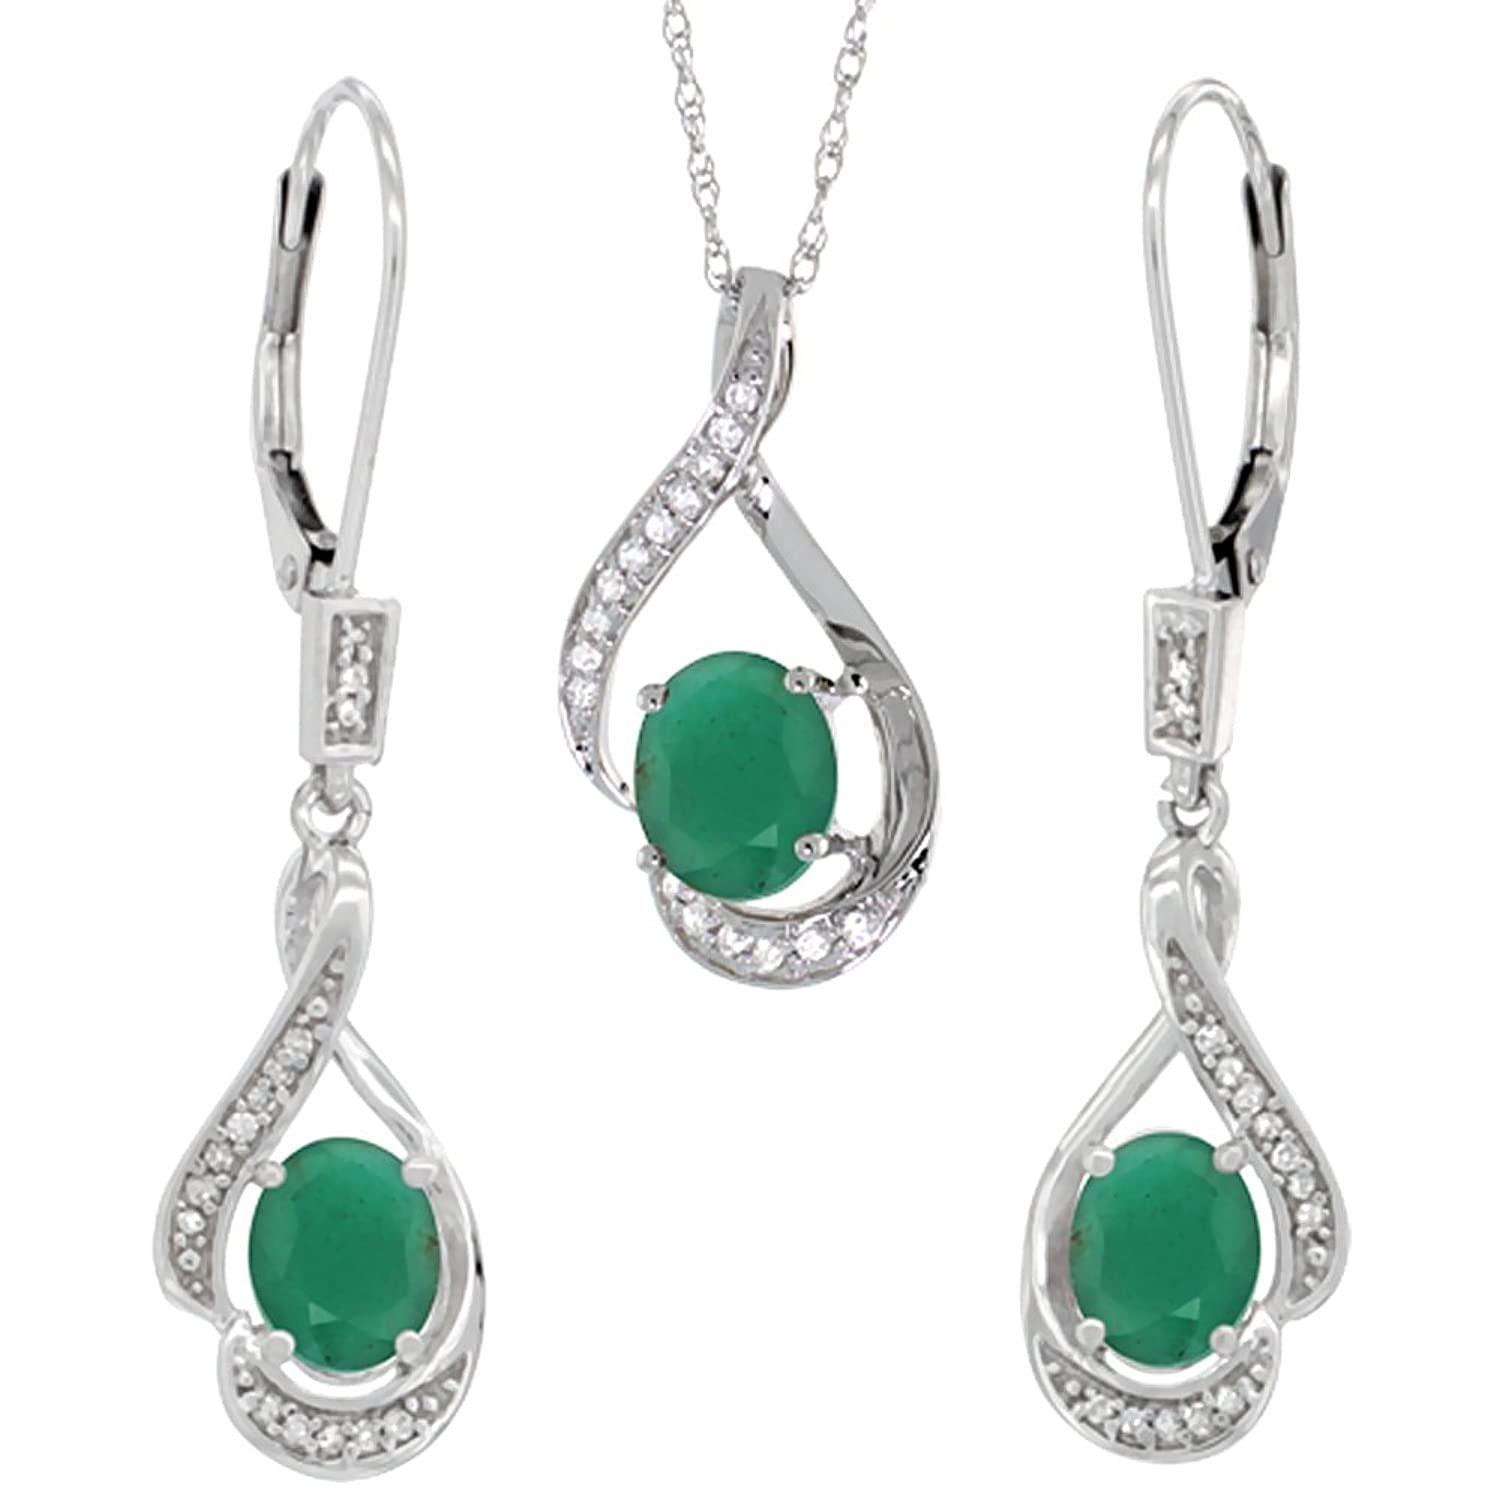 emerald com alibaba heat and at treated suppliers india showroom drops manufacturers emeralds